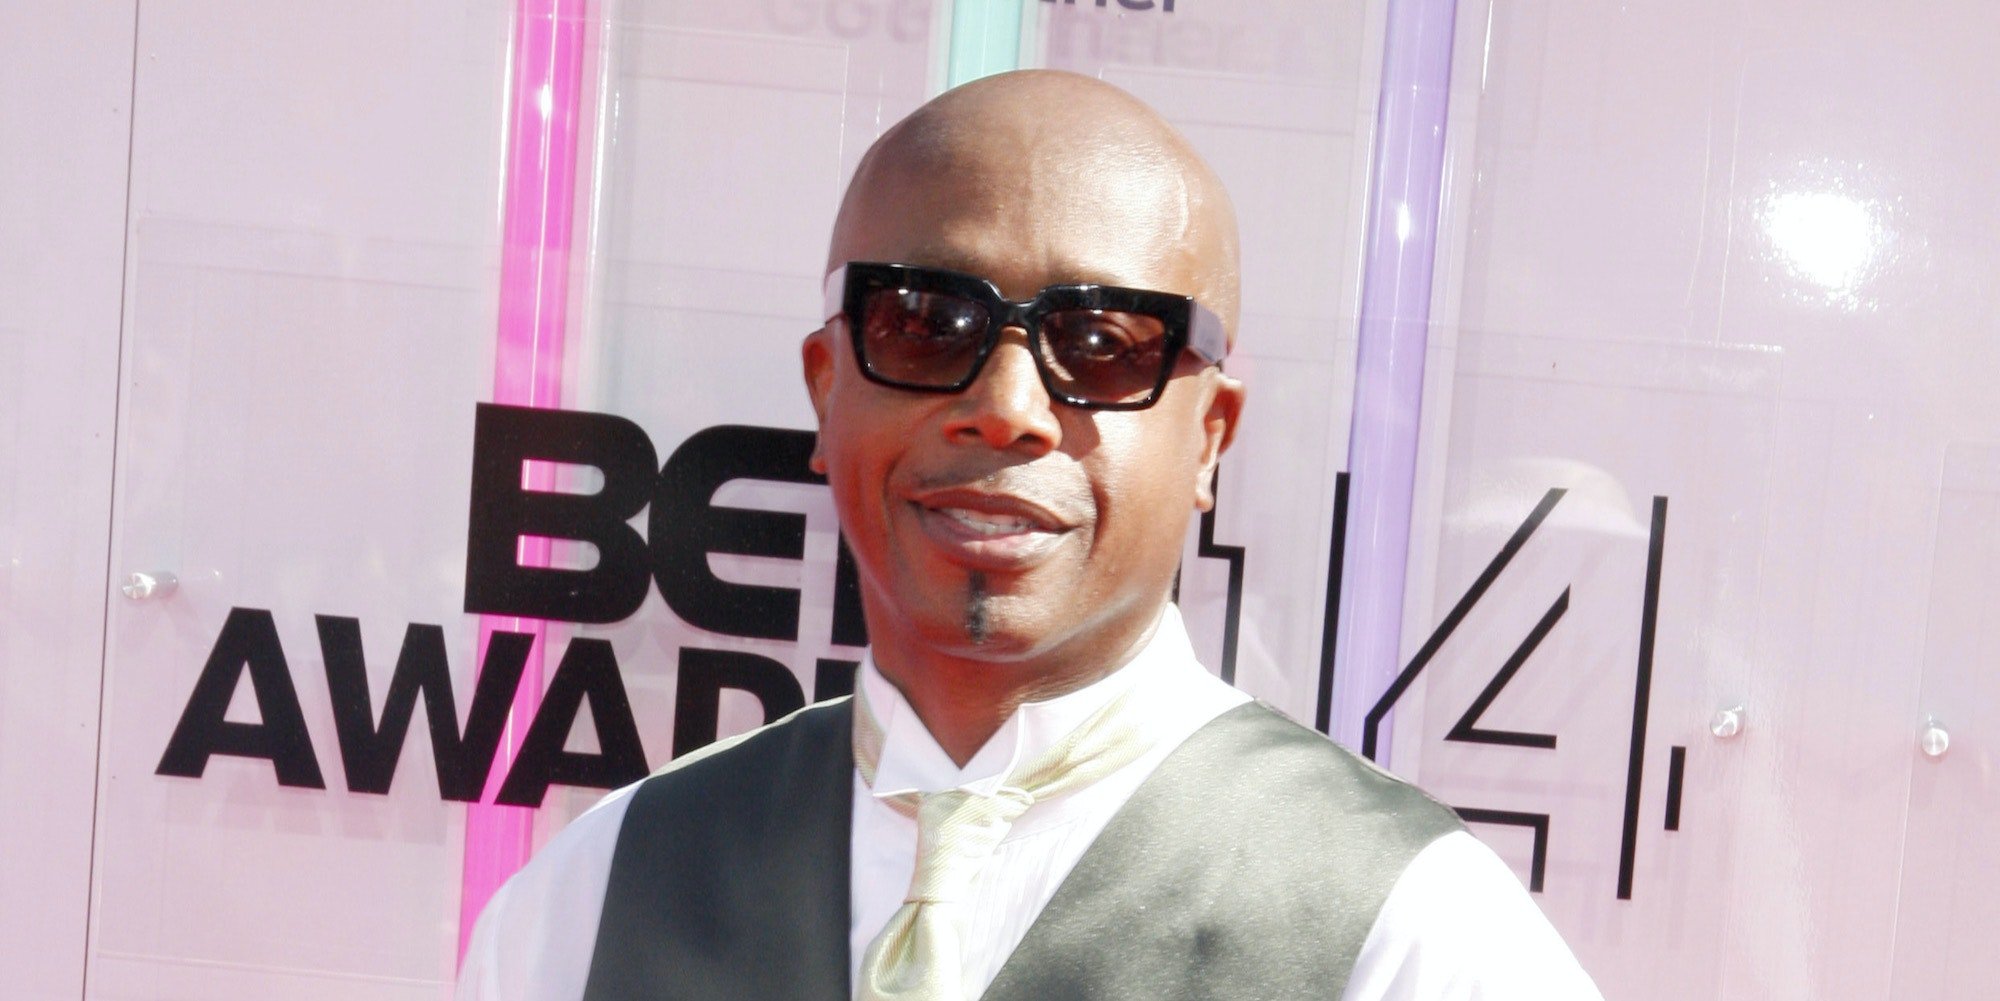 MC Hammer at the 2014 BET Awards